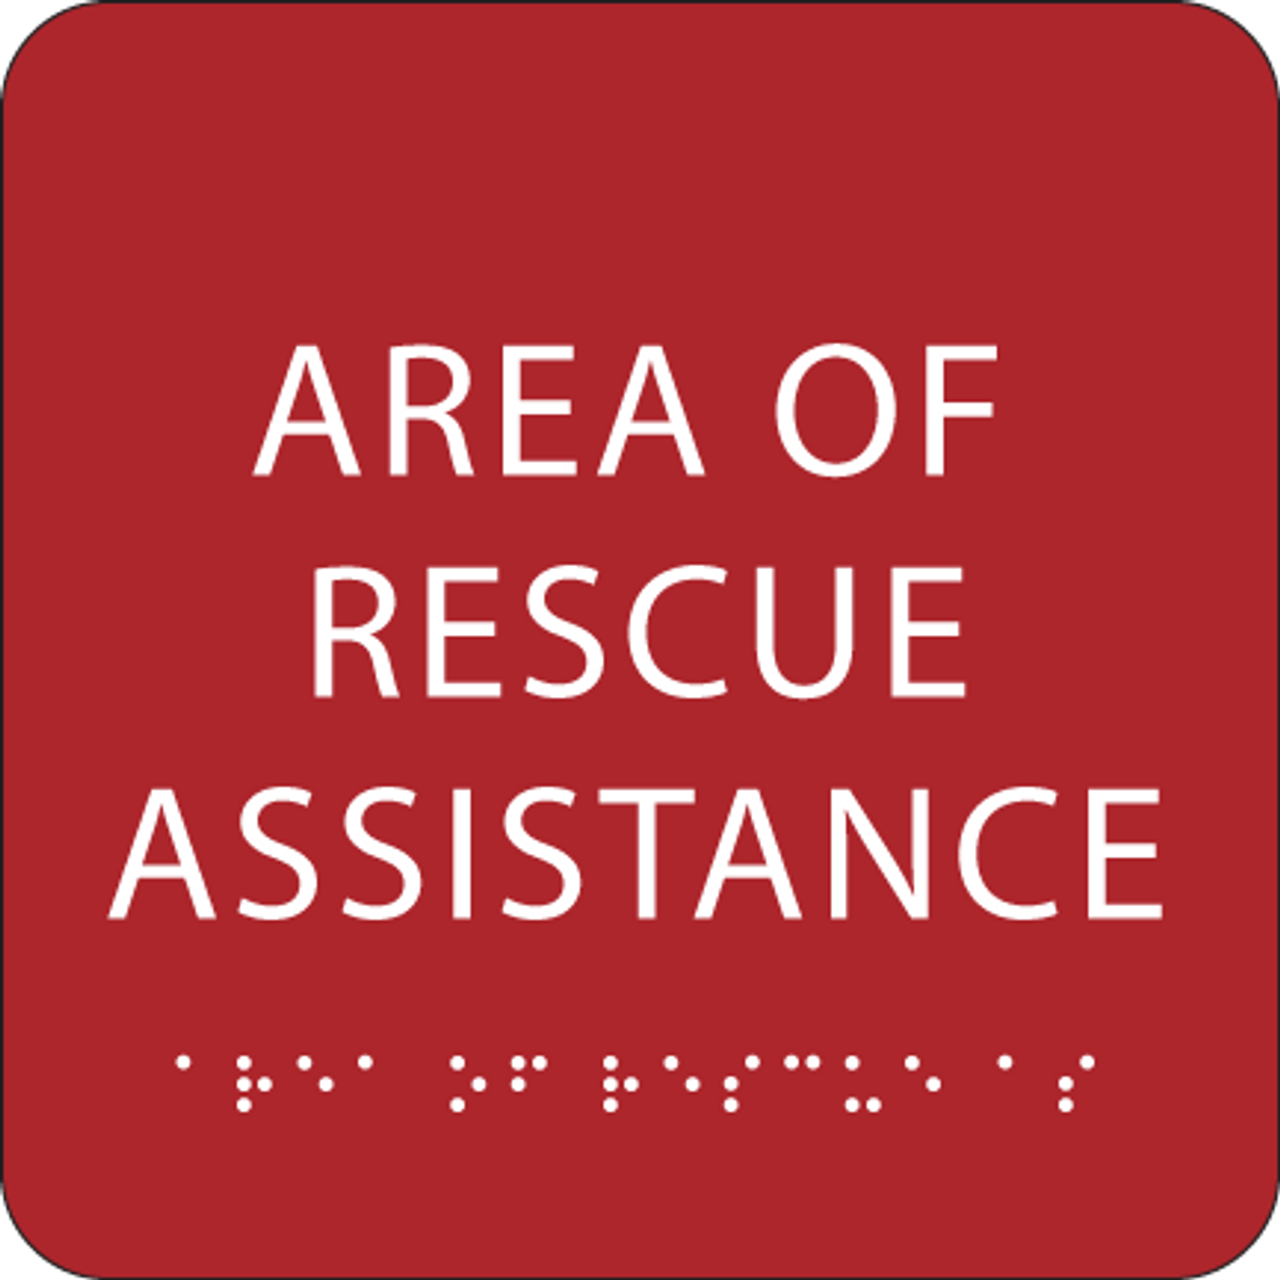 Red Area of Rescue Assistance ADA Sign